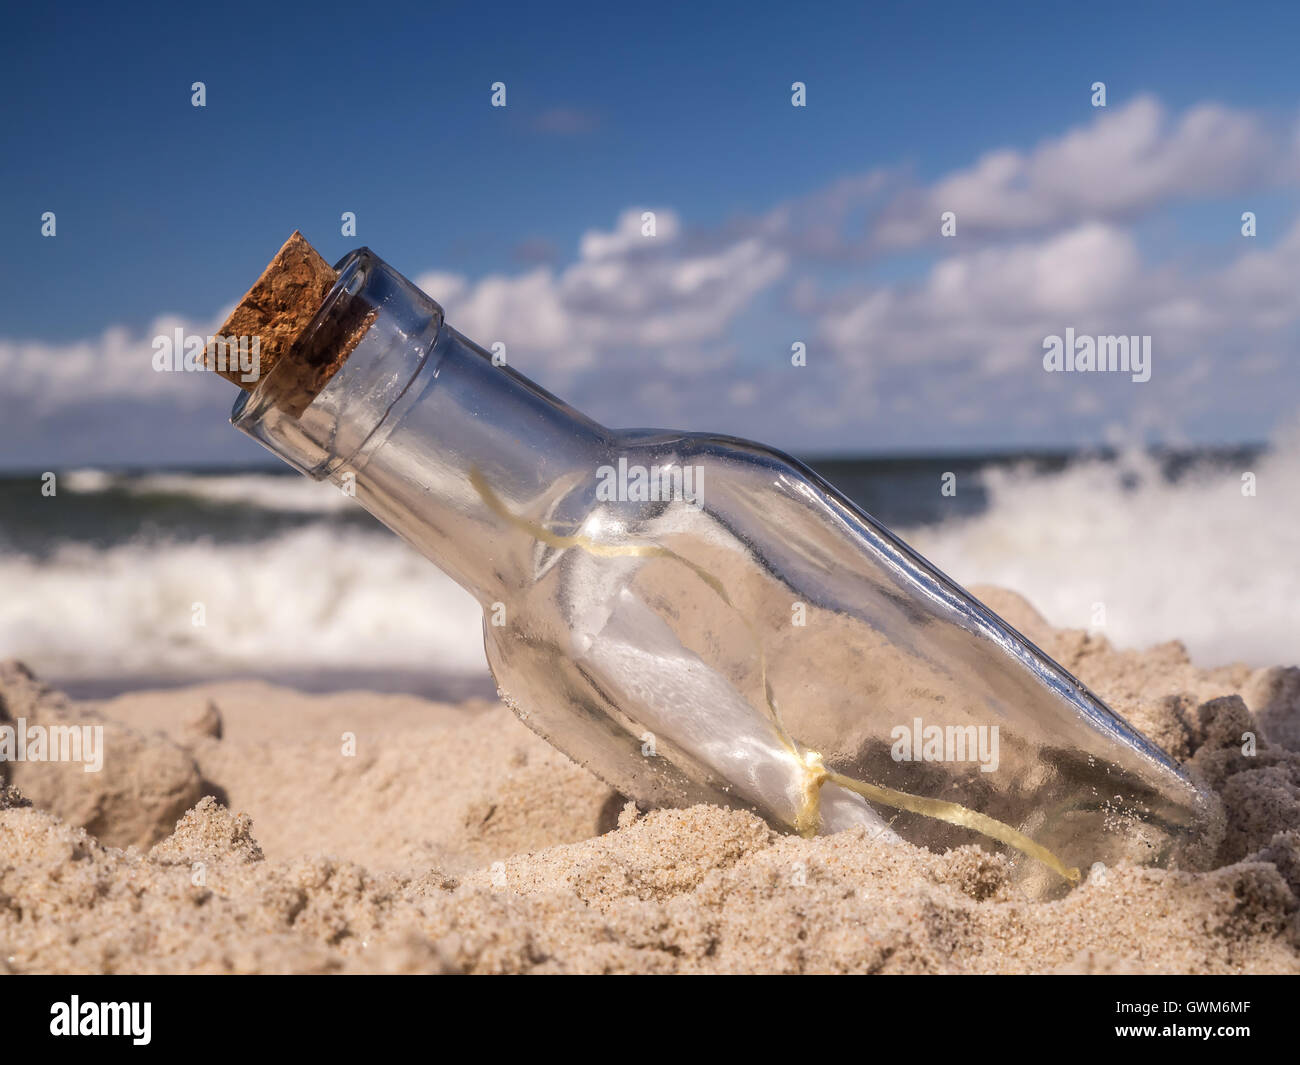 Corked bottle with message stuck in the sand on the beach - Stock Image